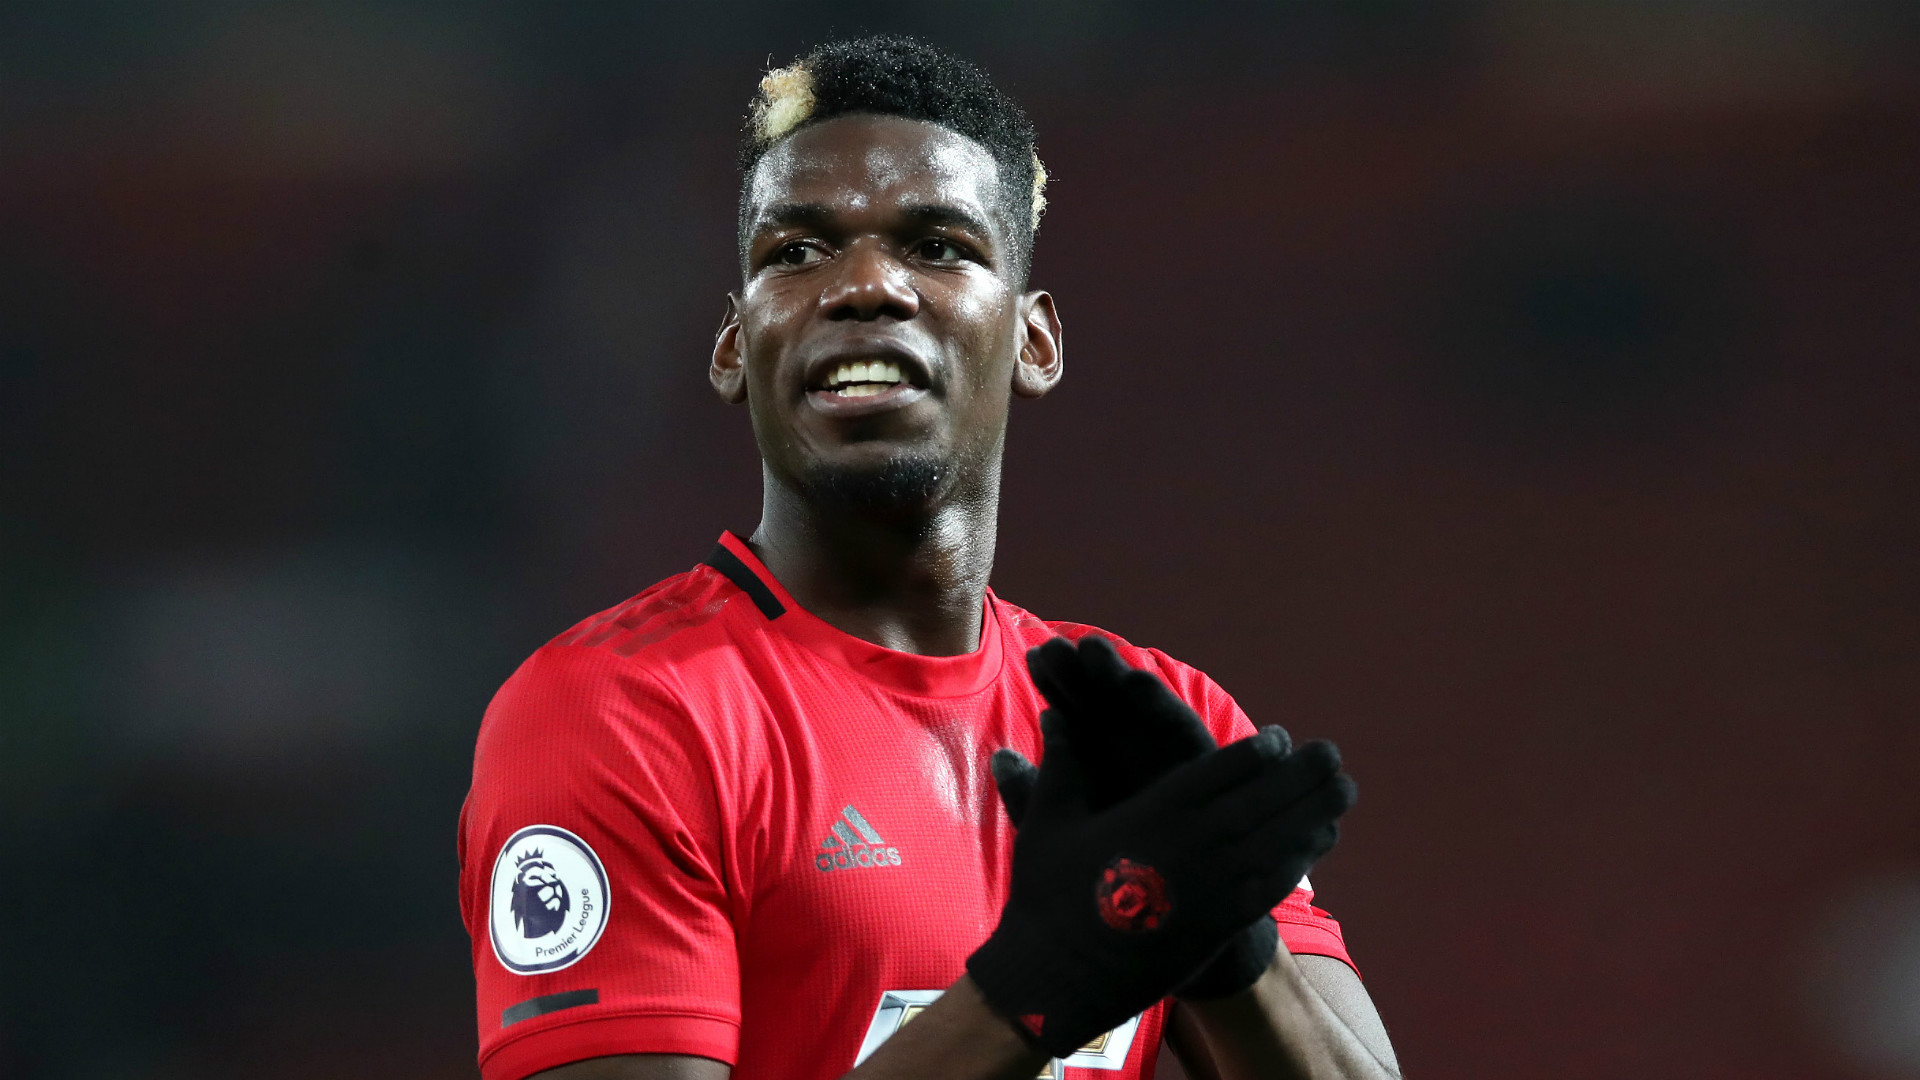 Pogba backed for Man Utd stay by 'very close' friend Januzaj as Juventus & Real Madrid talk fades